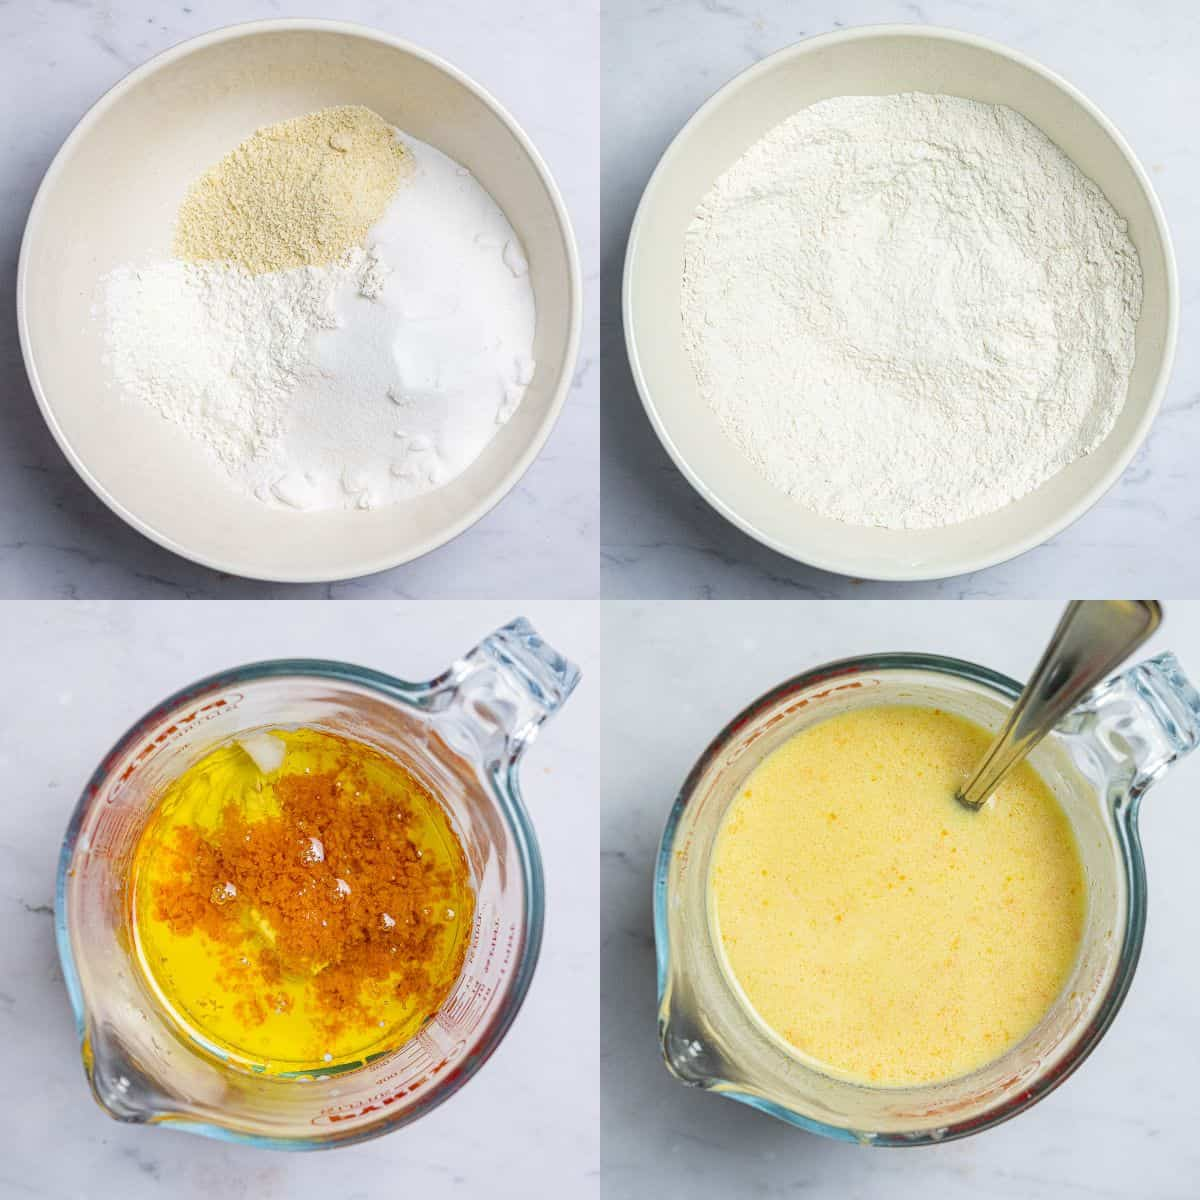 Step 1 - a four image collage of sifting together the dry ingredients and whisking together the wet ingredients.